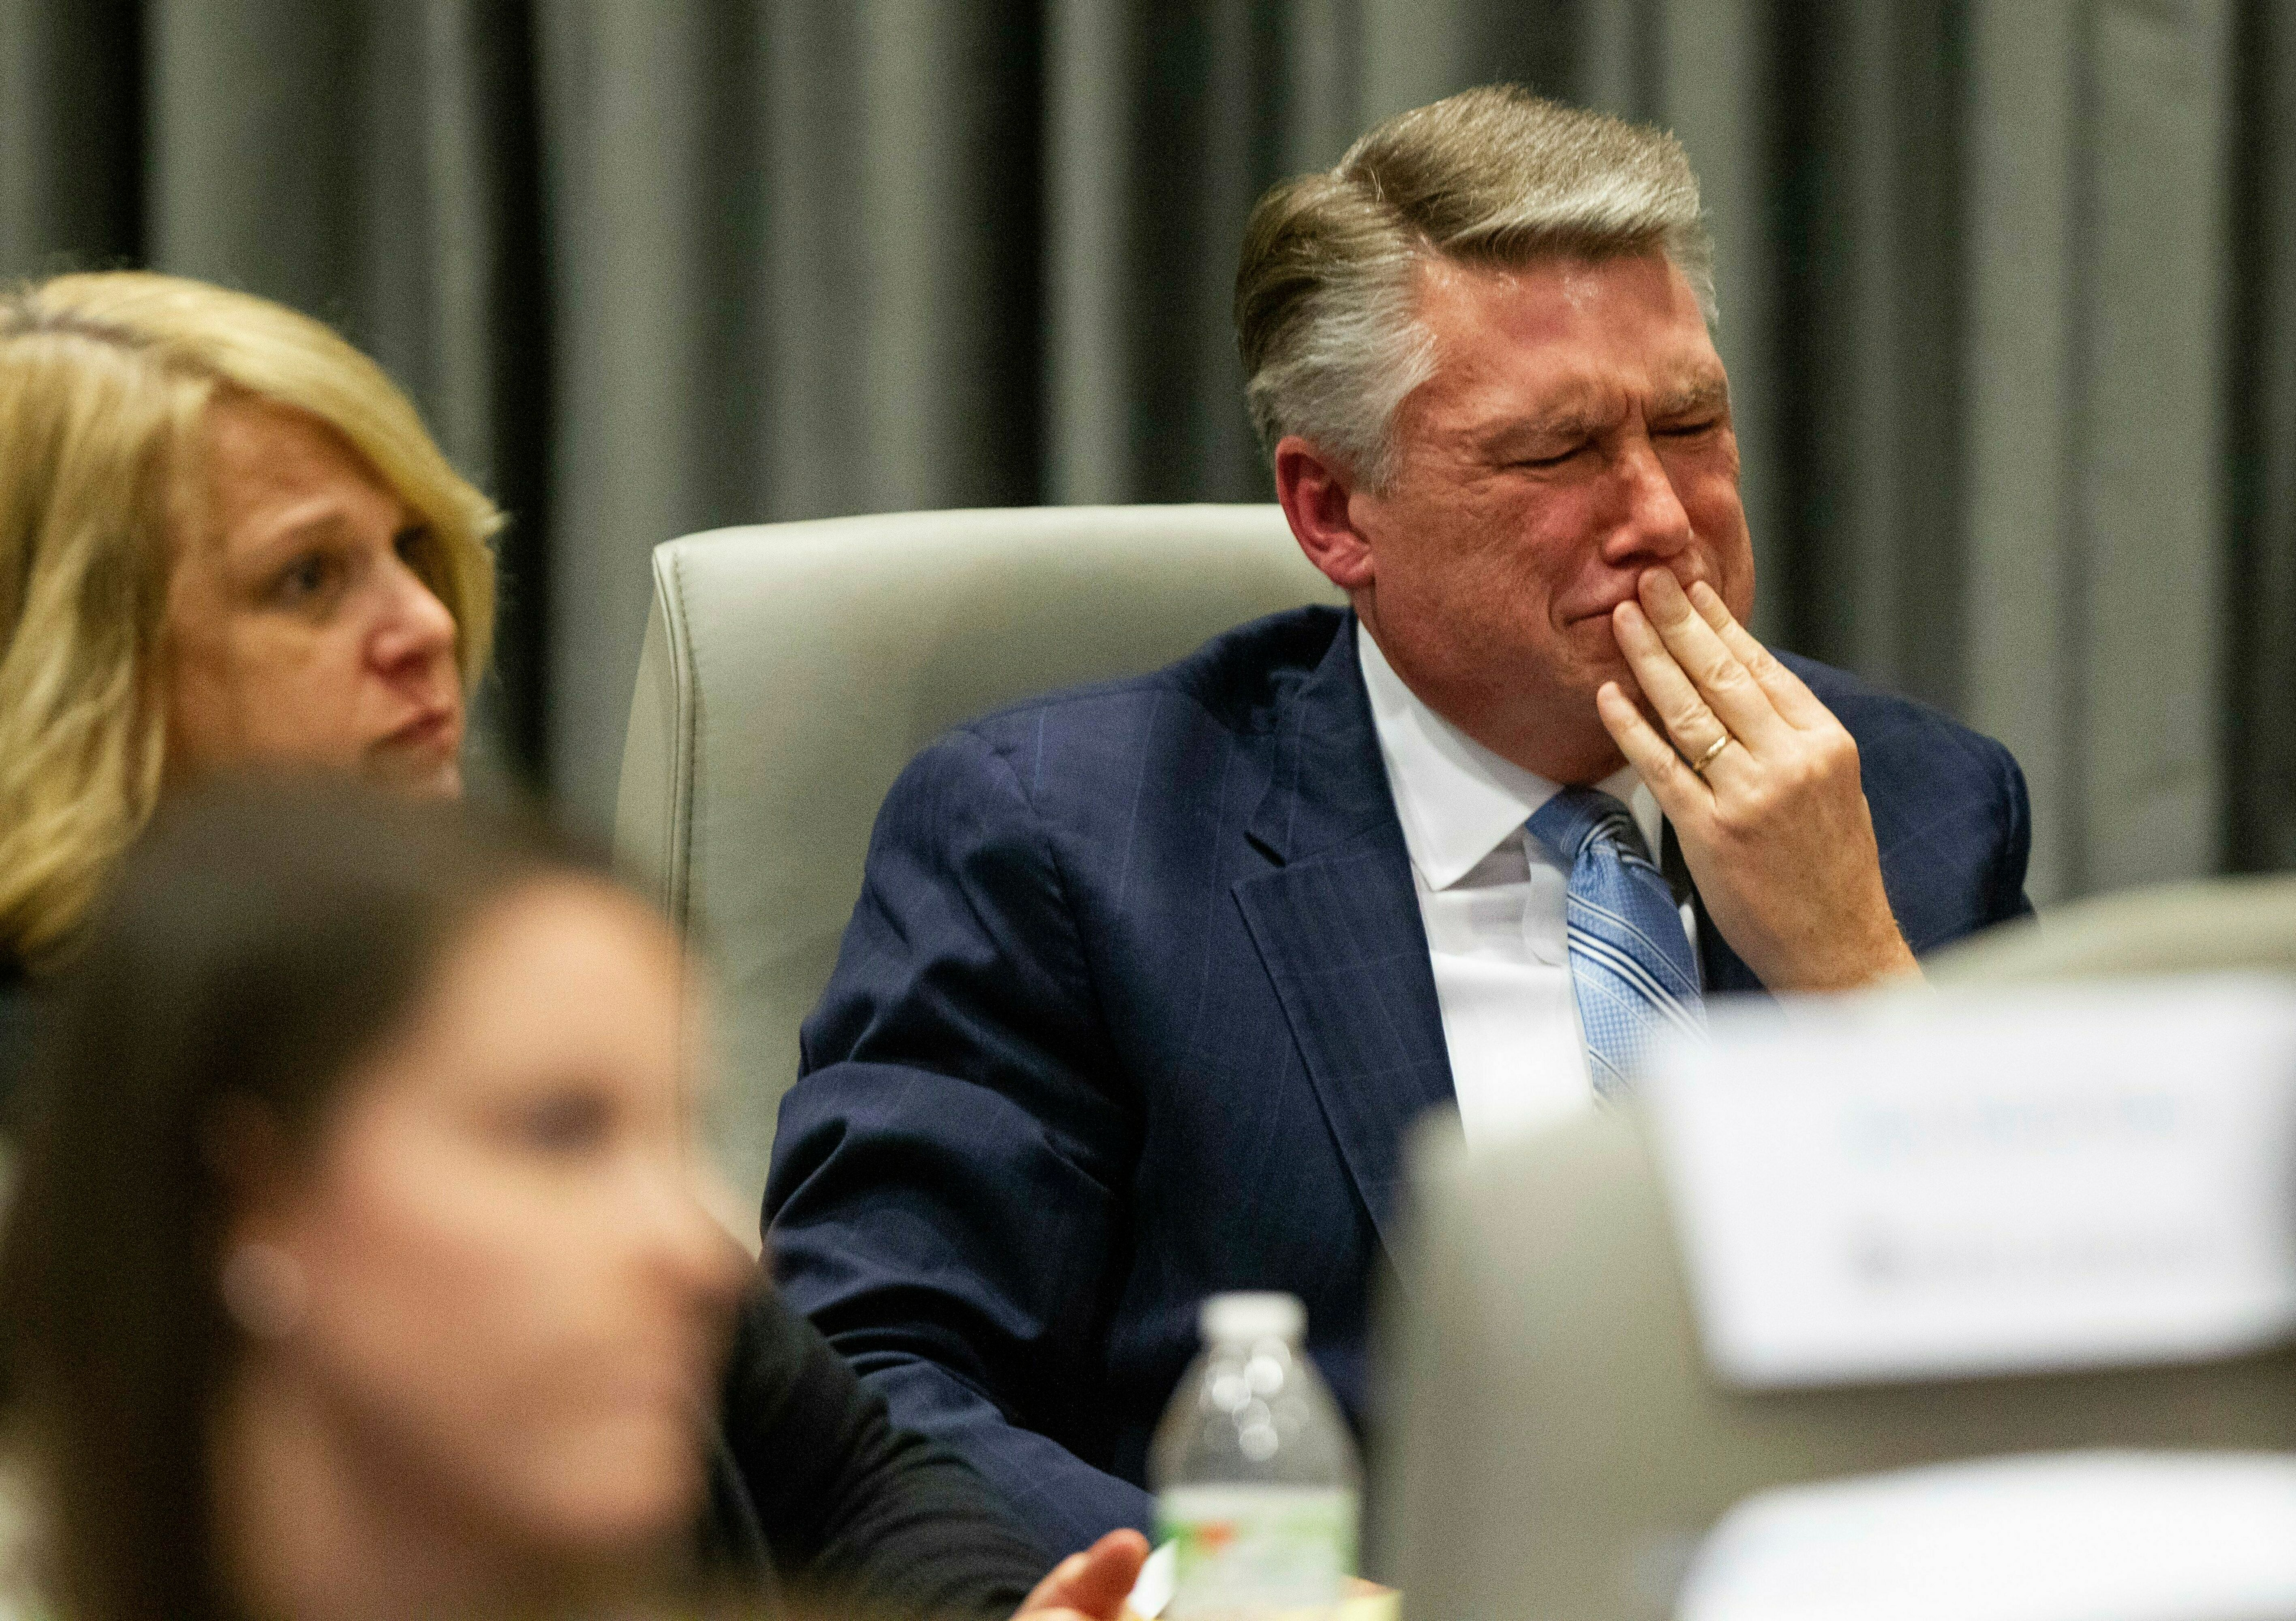 GOP candidate Mark Harris cries as his son testifies at a hearing about allegations of absentee ballot fraud on Wednesday.